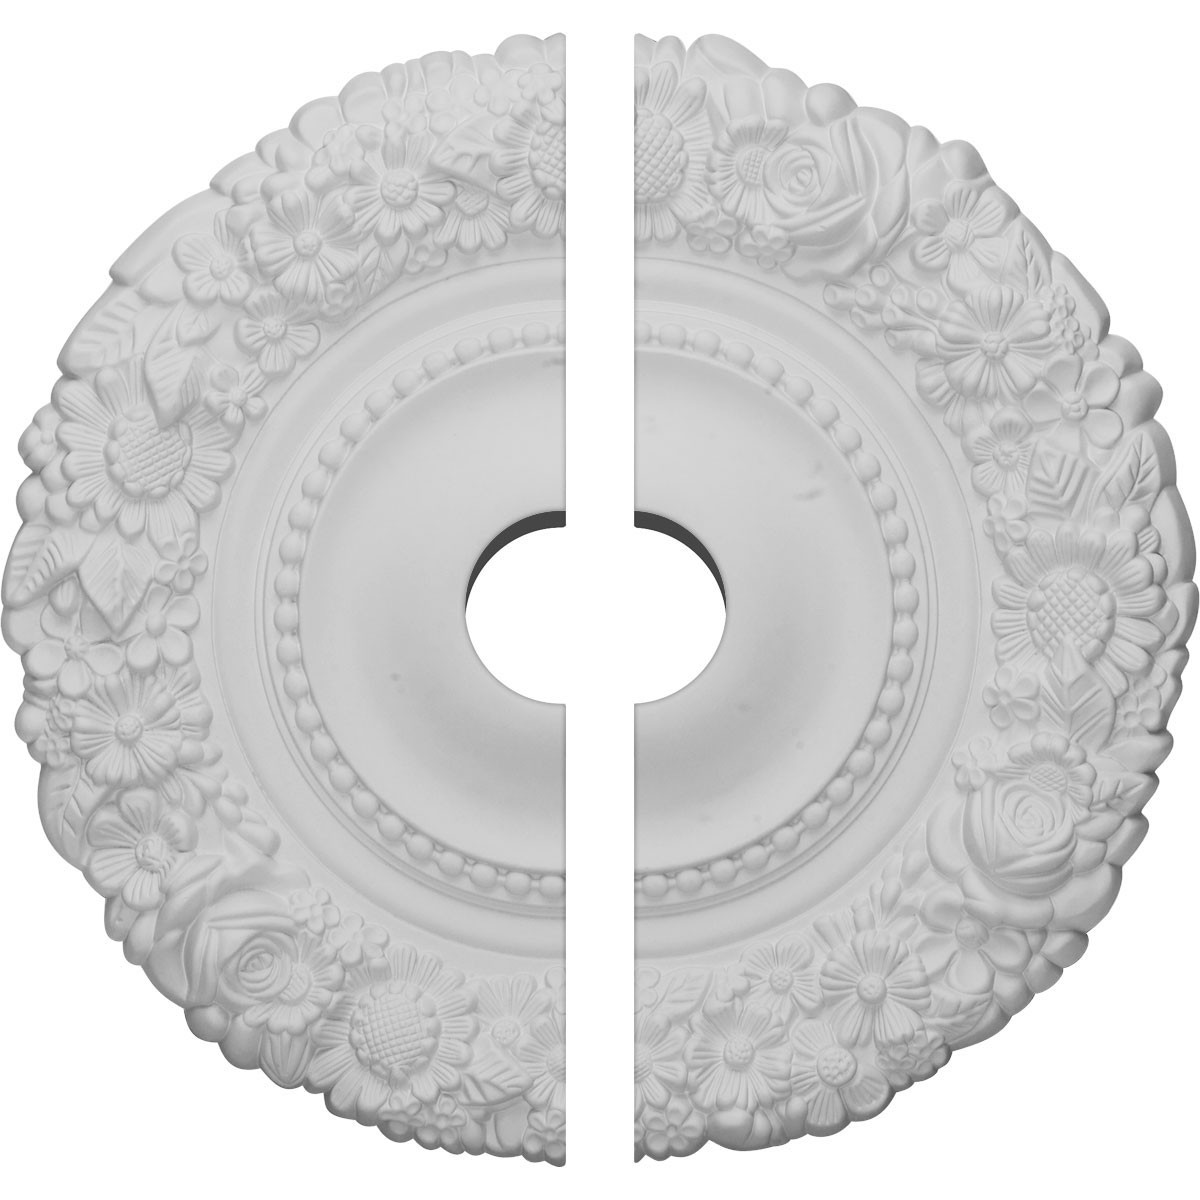 """EM-CM21MA2-03500 - 21""""OD x 3 1/2""""ID x 2""""P Marseille Ceiling Medallion, Two Piece (Fits Canopies up to 7 3/8"""")"""